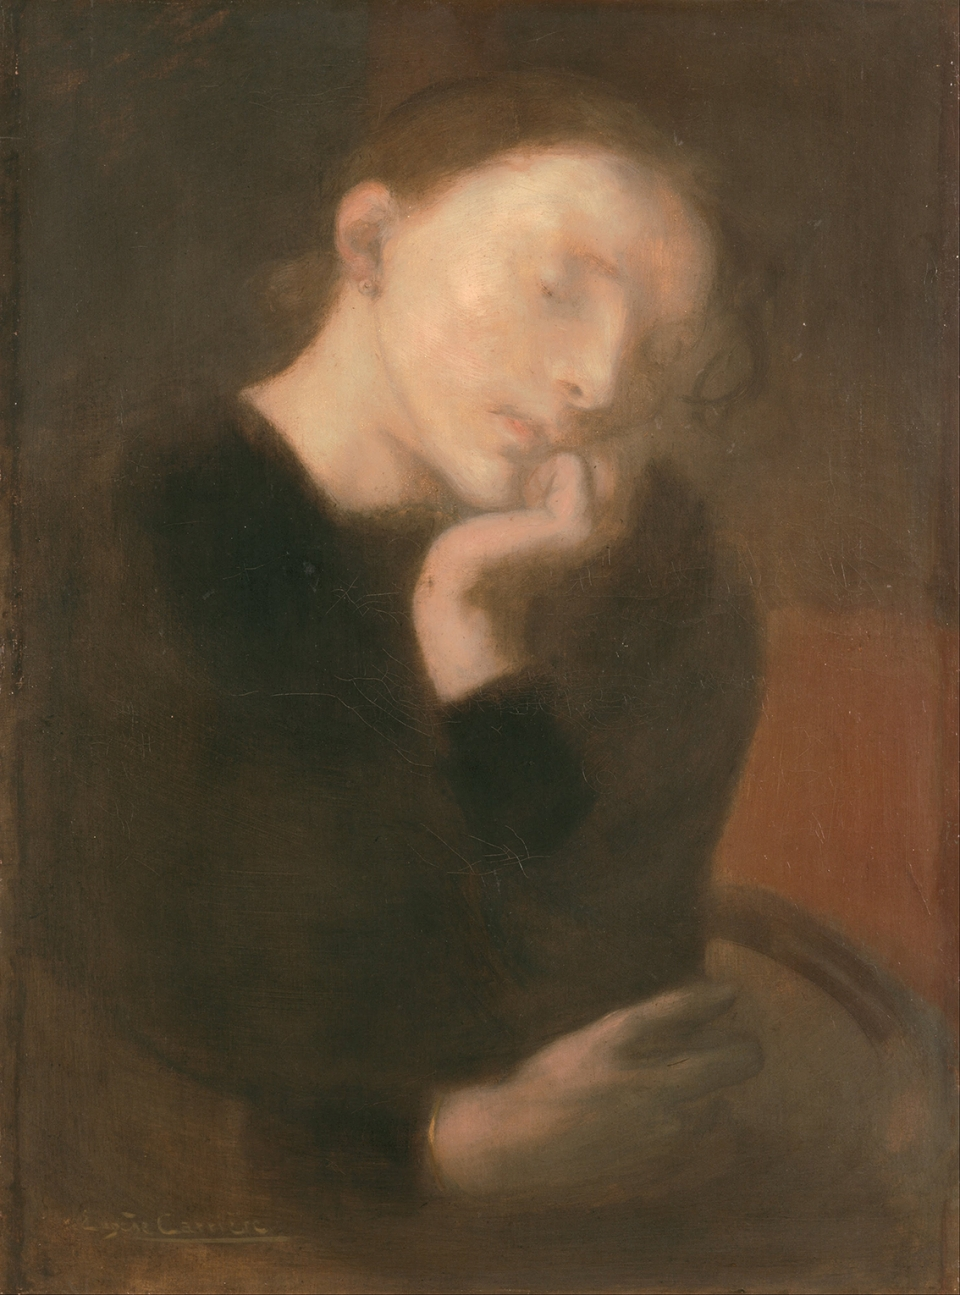 Eugène Carrière, 1849–1906. 'Meditation', 1890-1893, oil on canvas, 48.7 x 65.5 cm, Ohara Museum of Art.